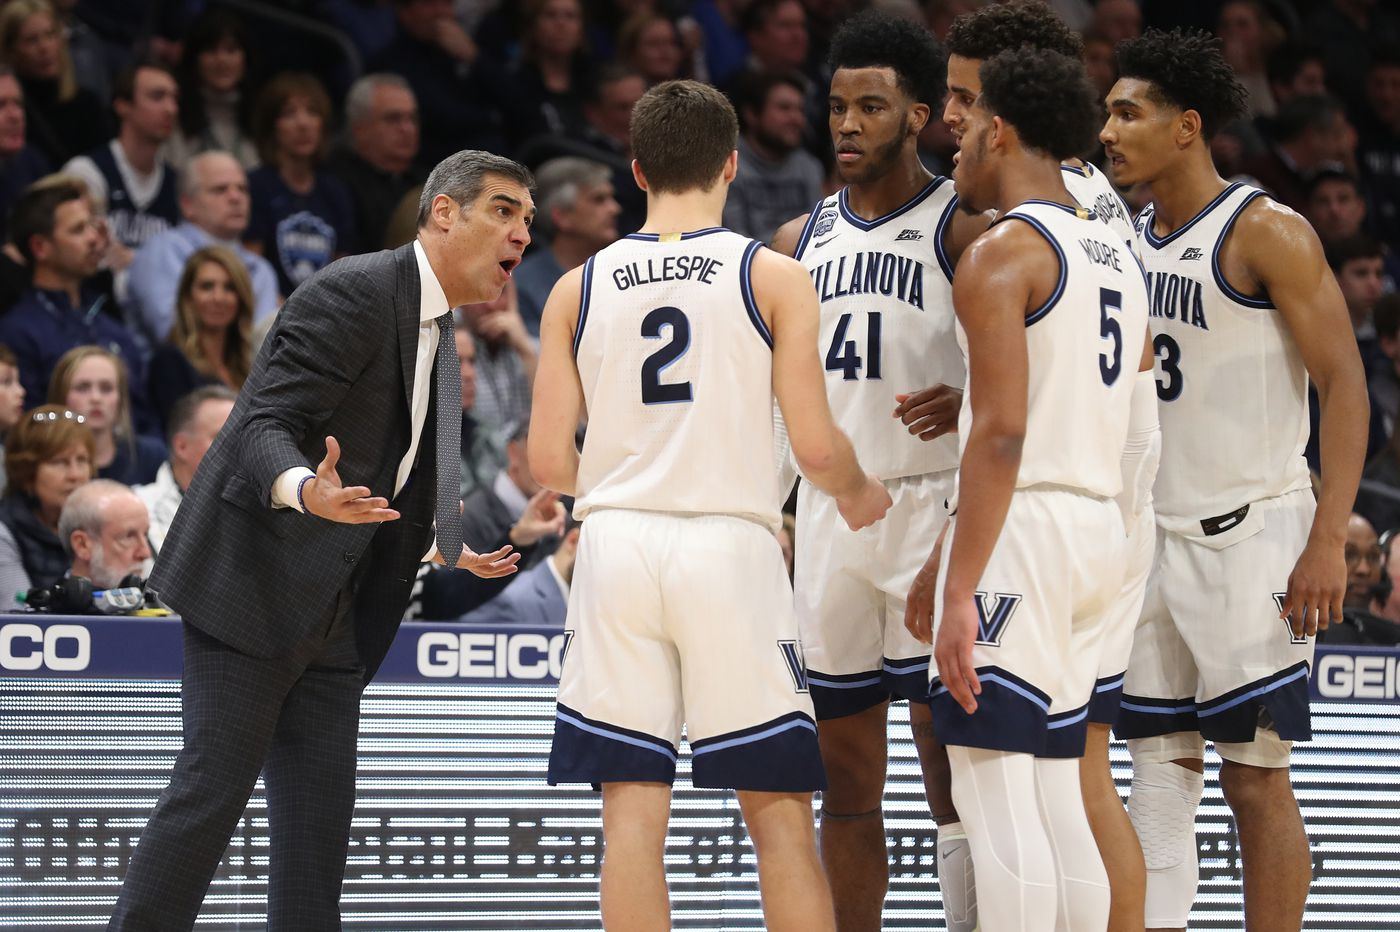 Villanova coach Jay Wright and his players educate themselves on voting in the wake of racial injustice